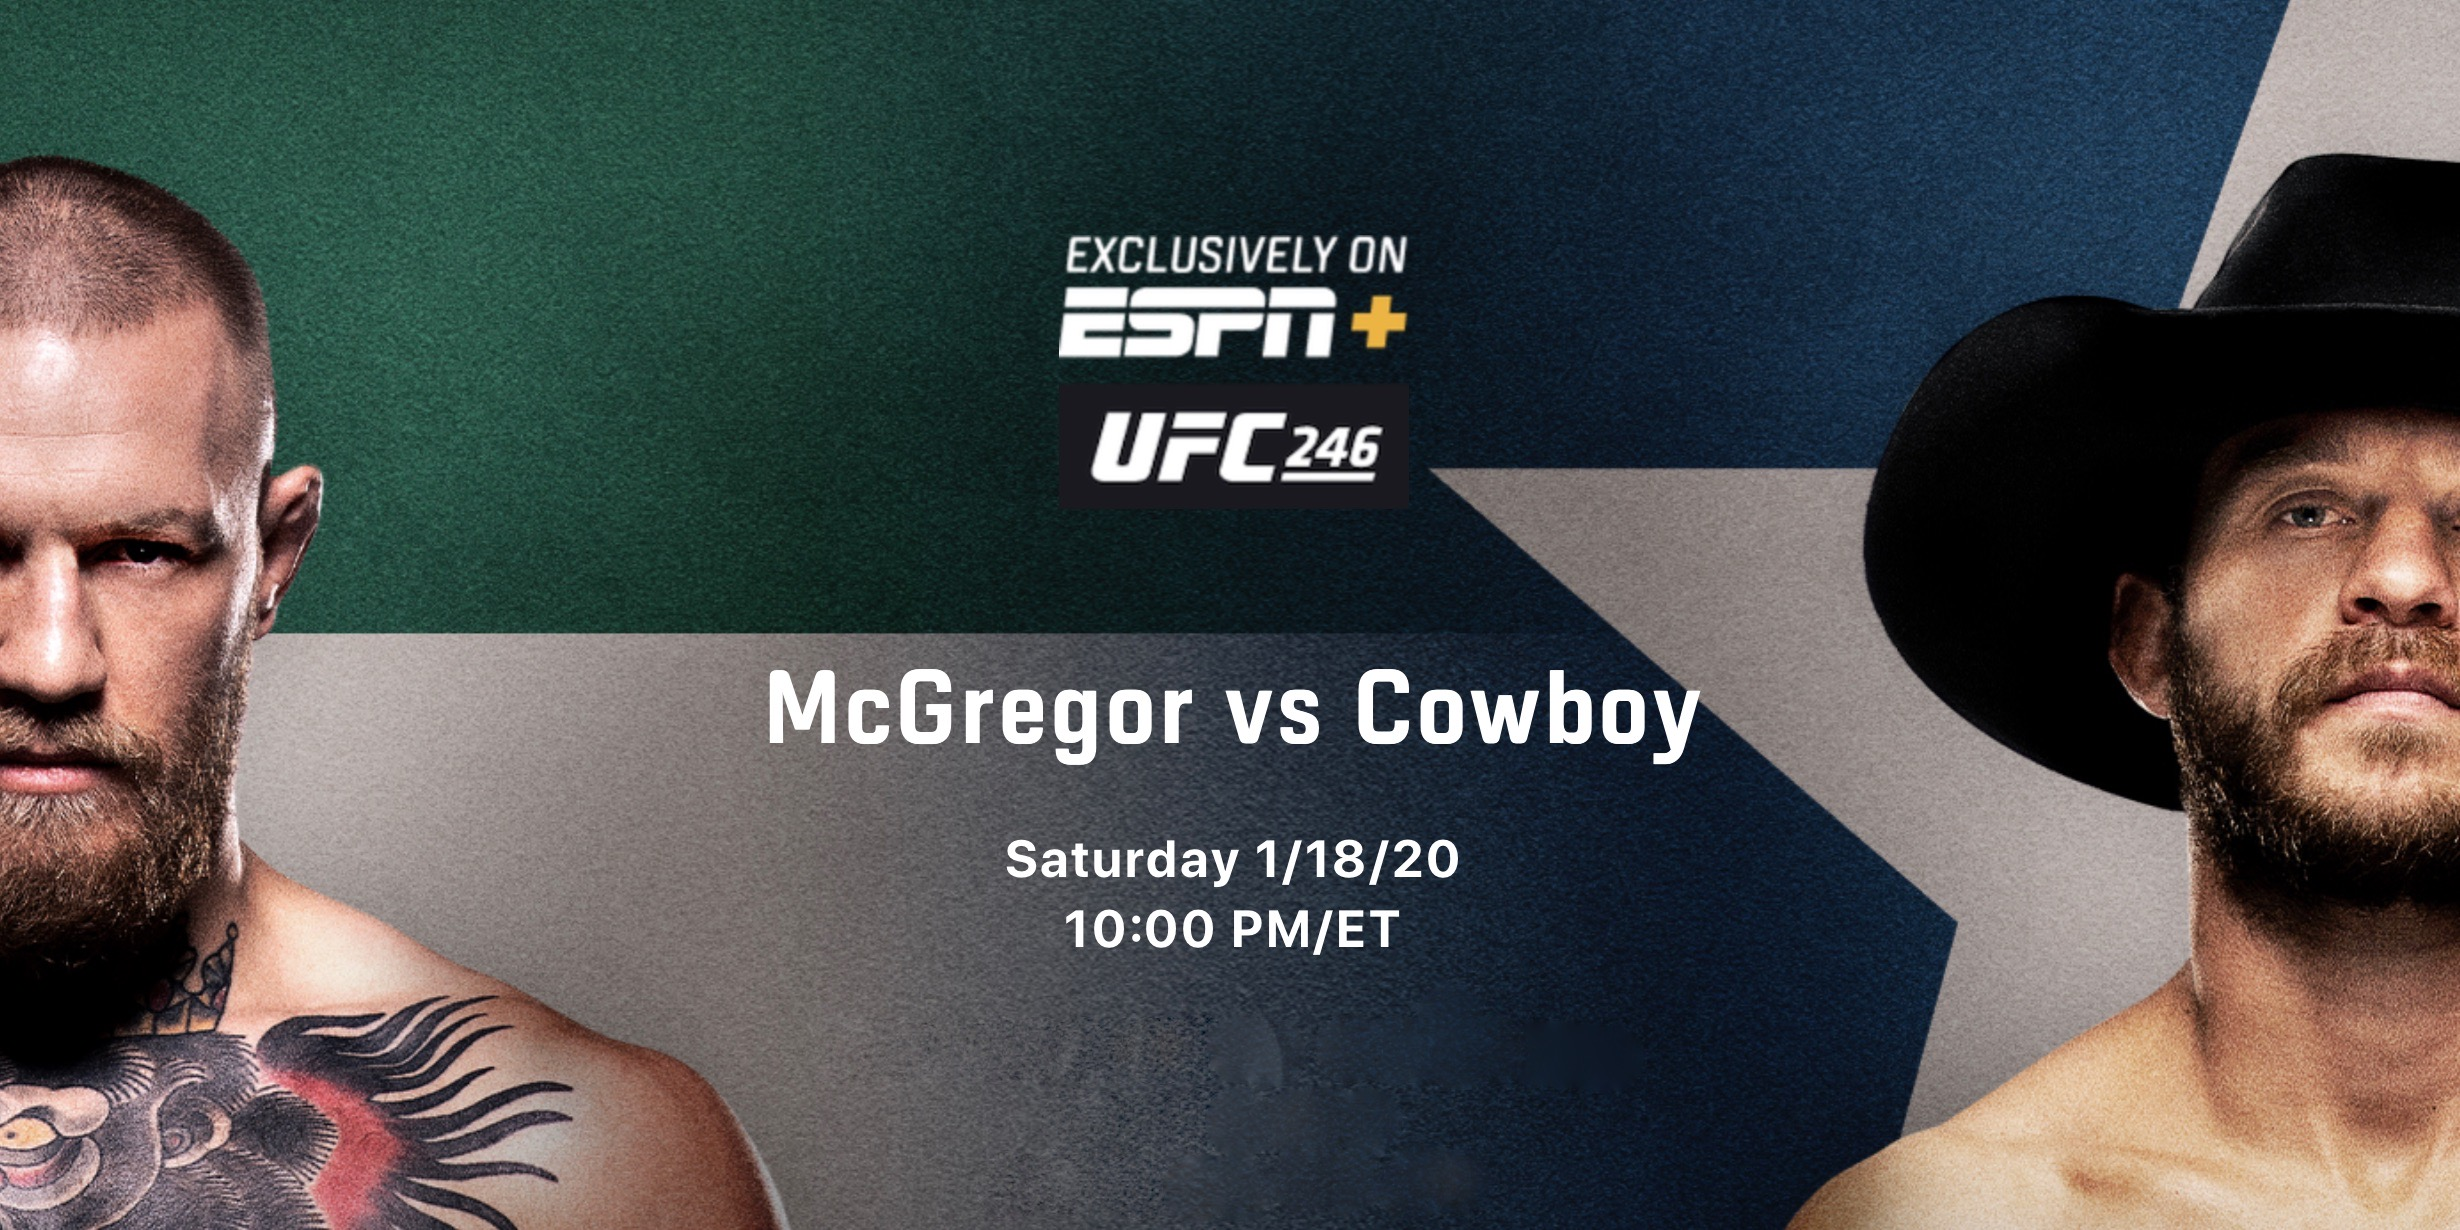 How To Watch Ufc Mcgregor Vs Cowboy On Iphone Apple Tv